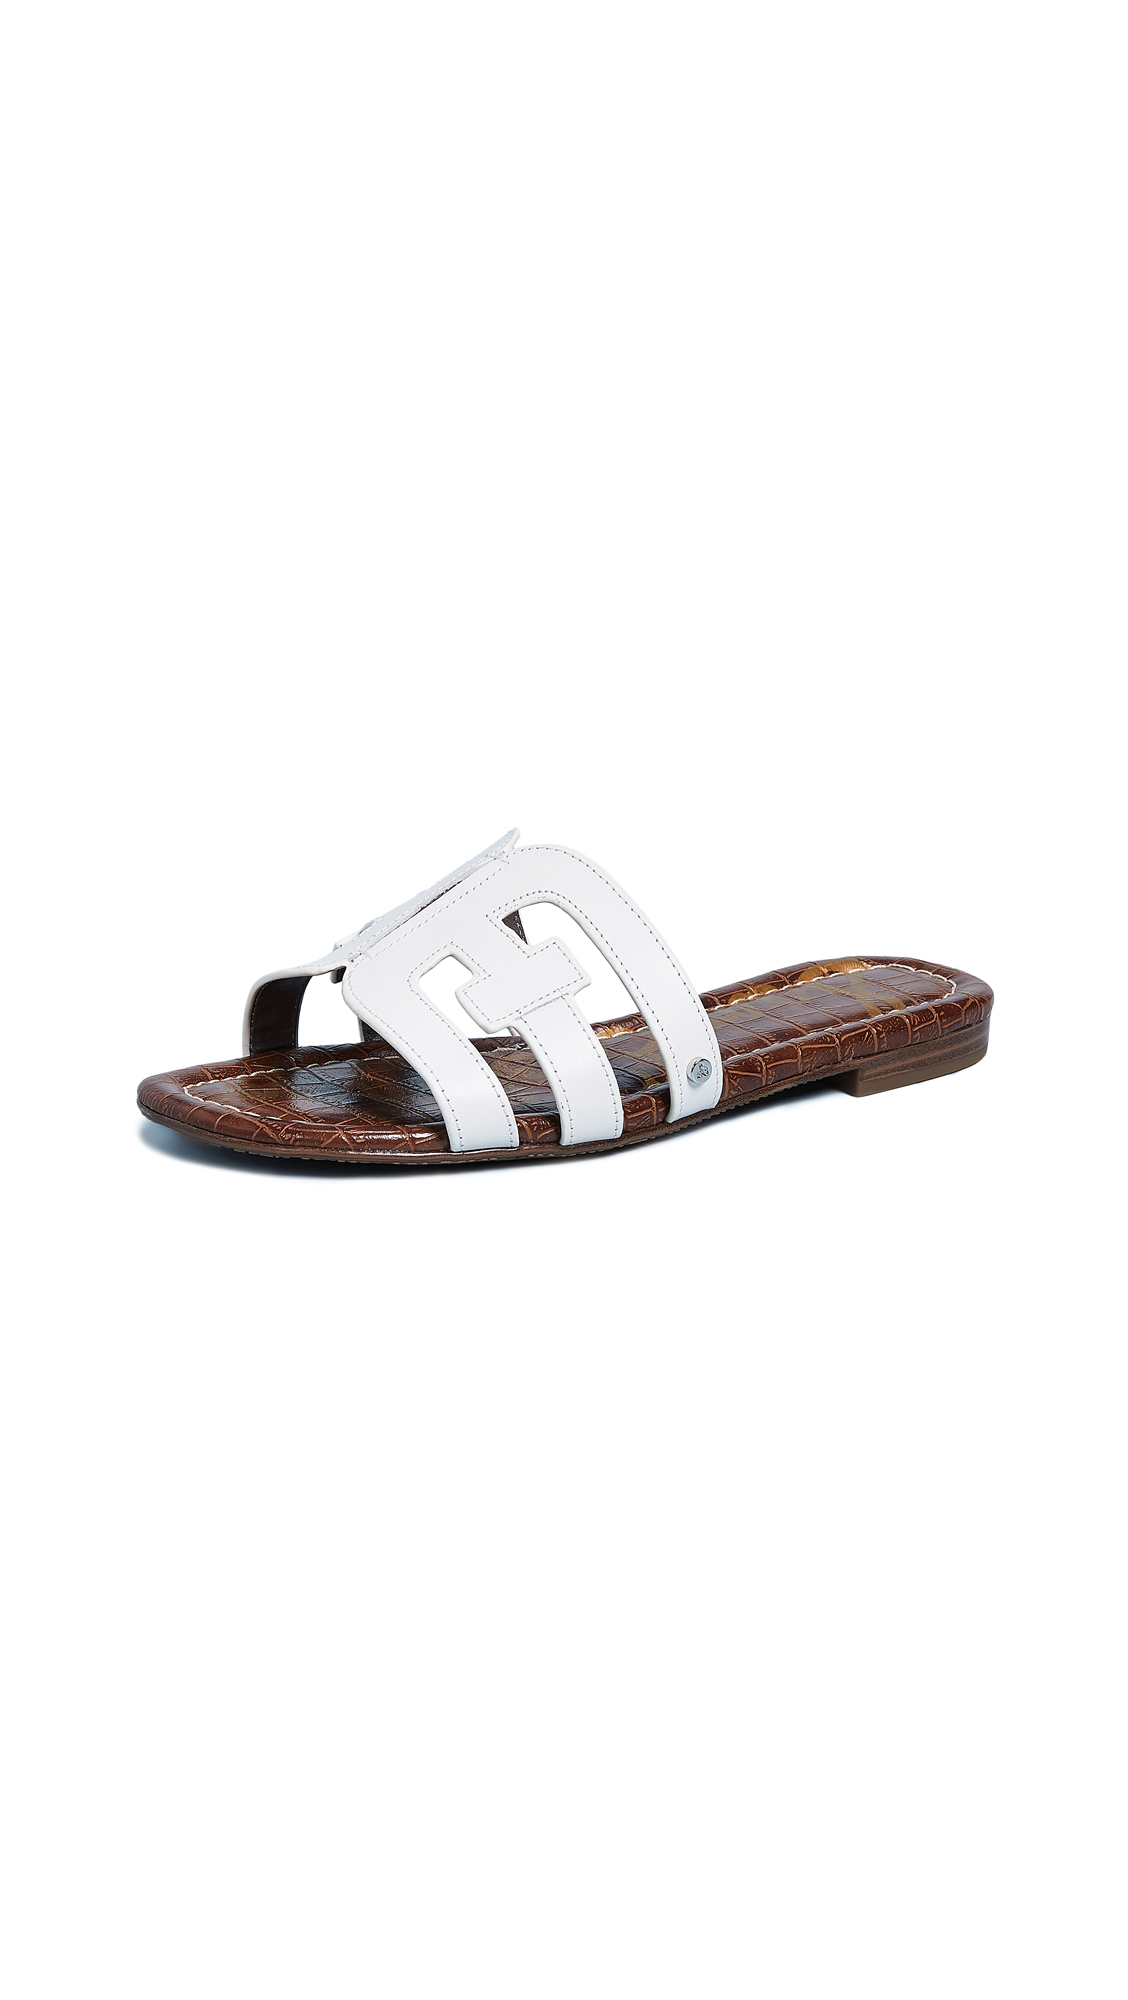 d50d9e786c6c Sam Edelman Women S Bay Leather Slide Sandals In White